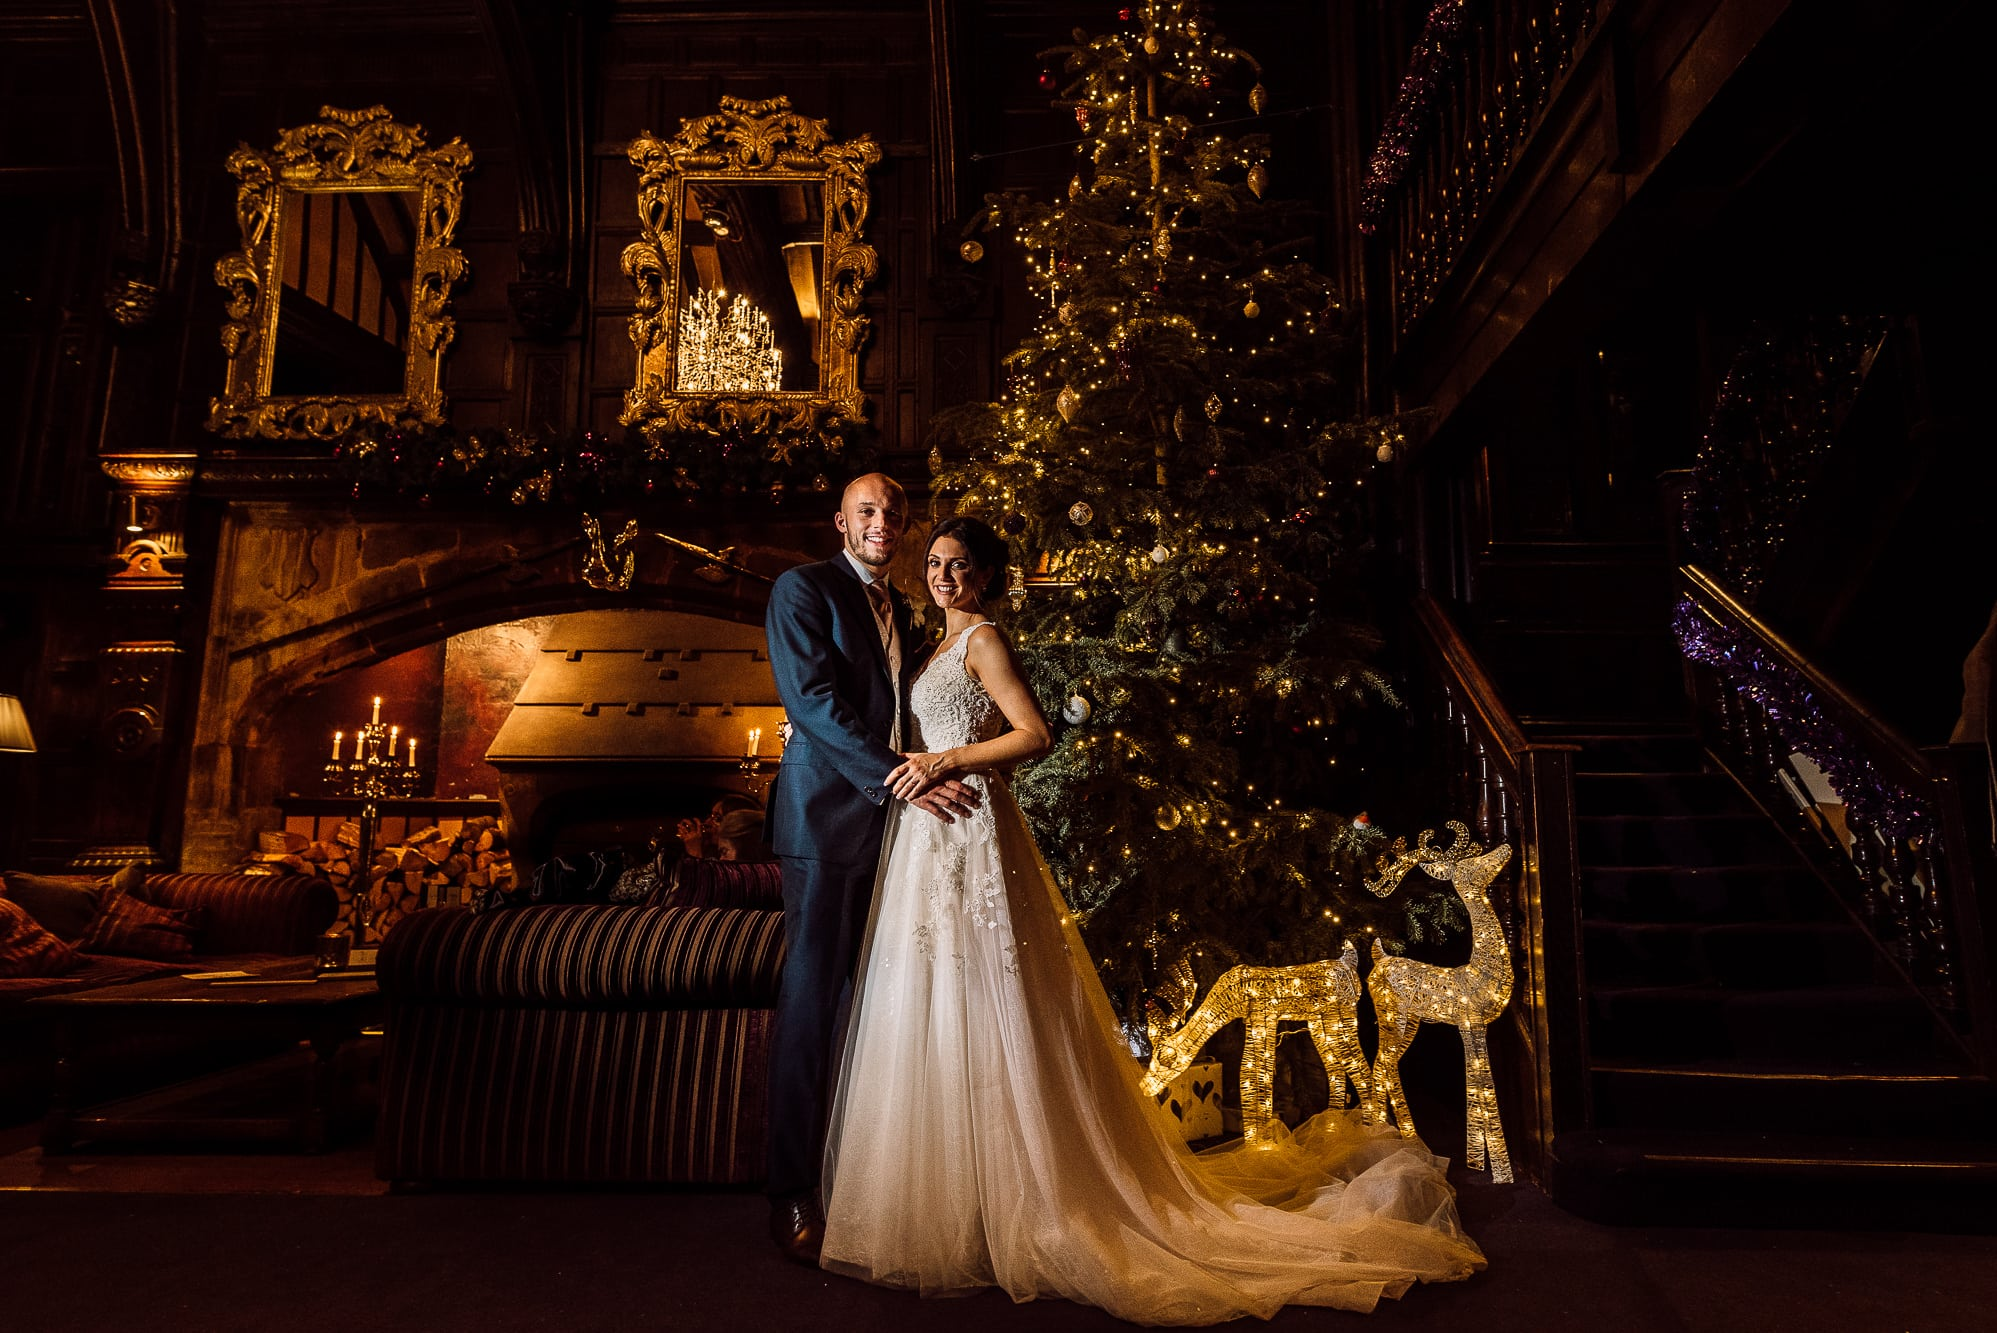 Bride and groom at Mitton Hall in front of the Christmas tree